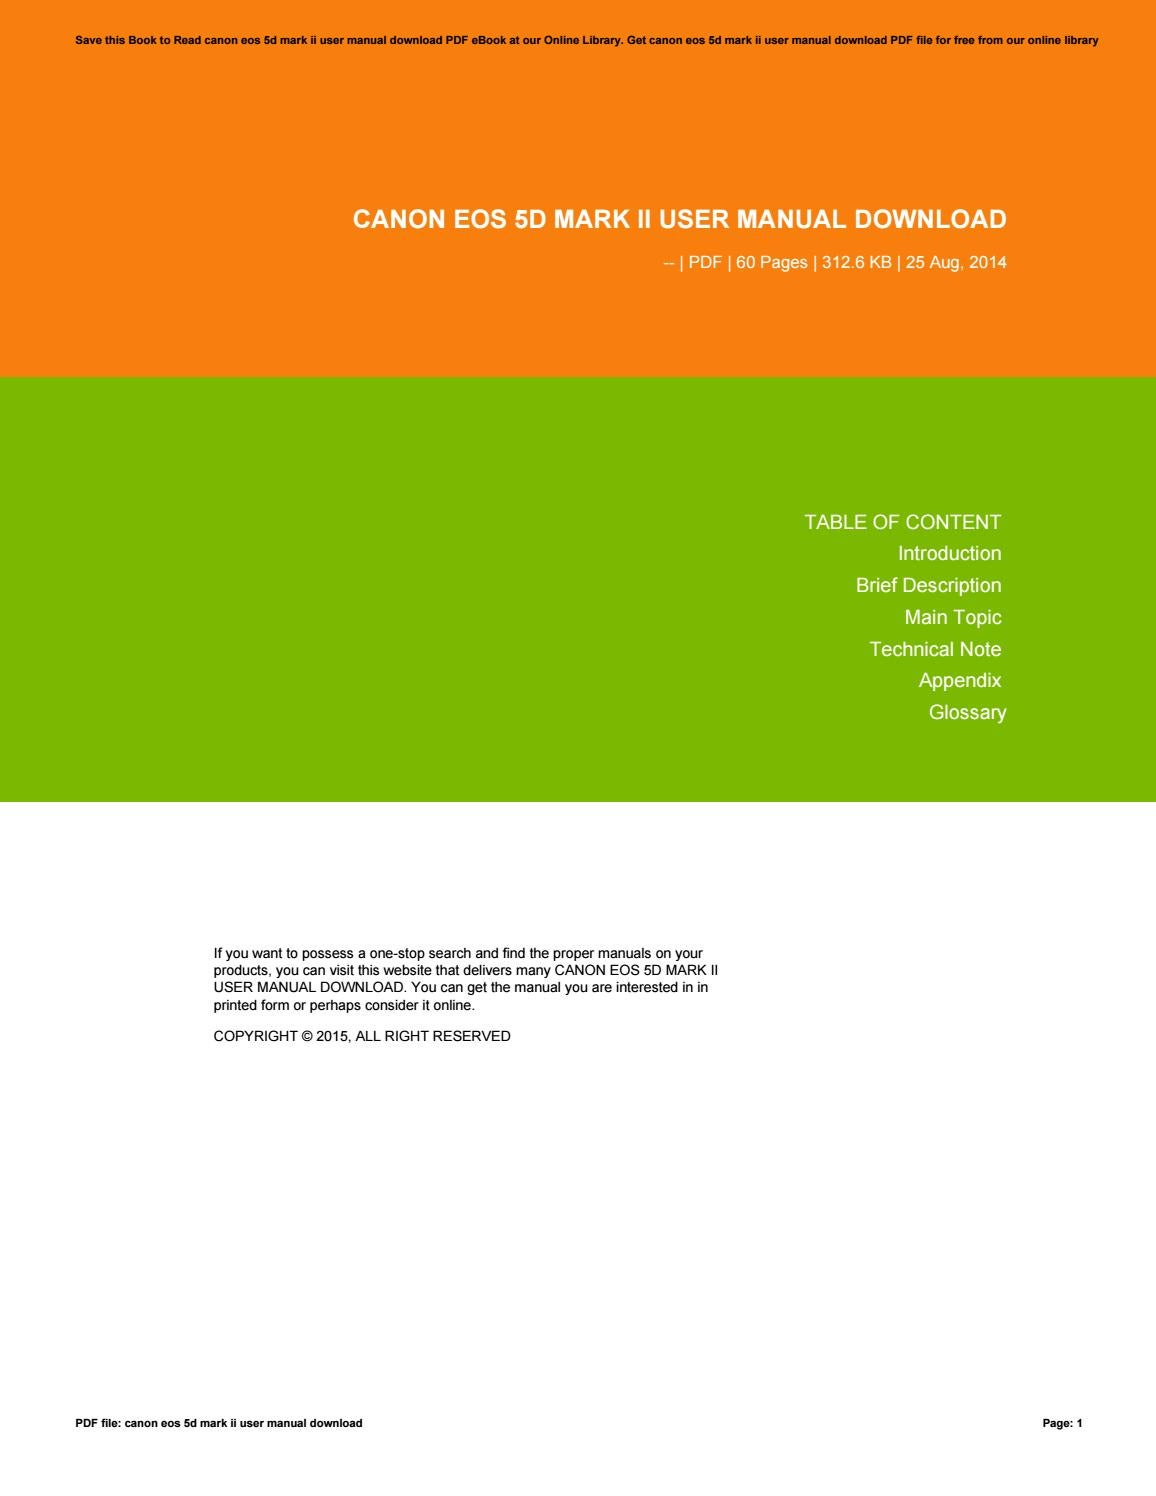 Canon eos 5d mk iii user manual.